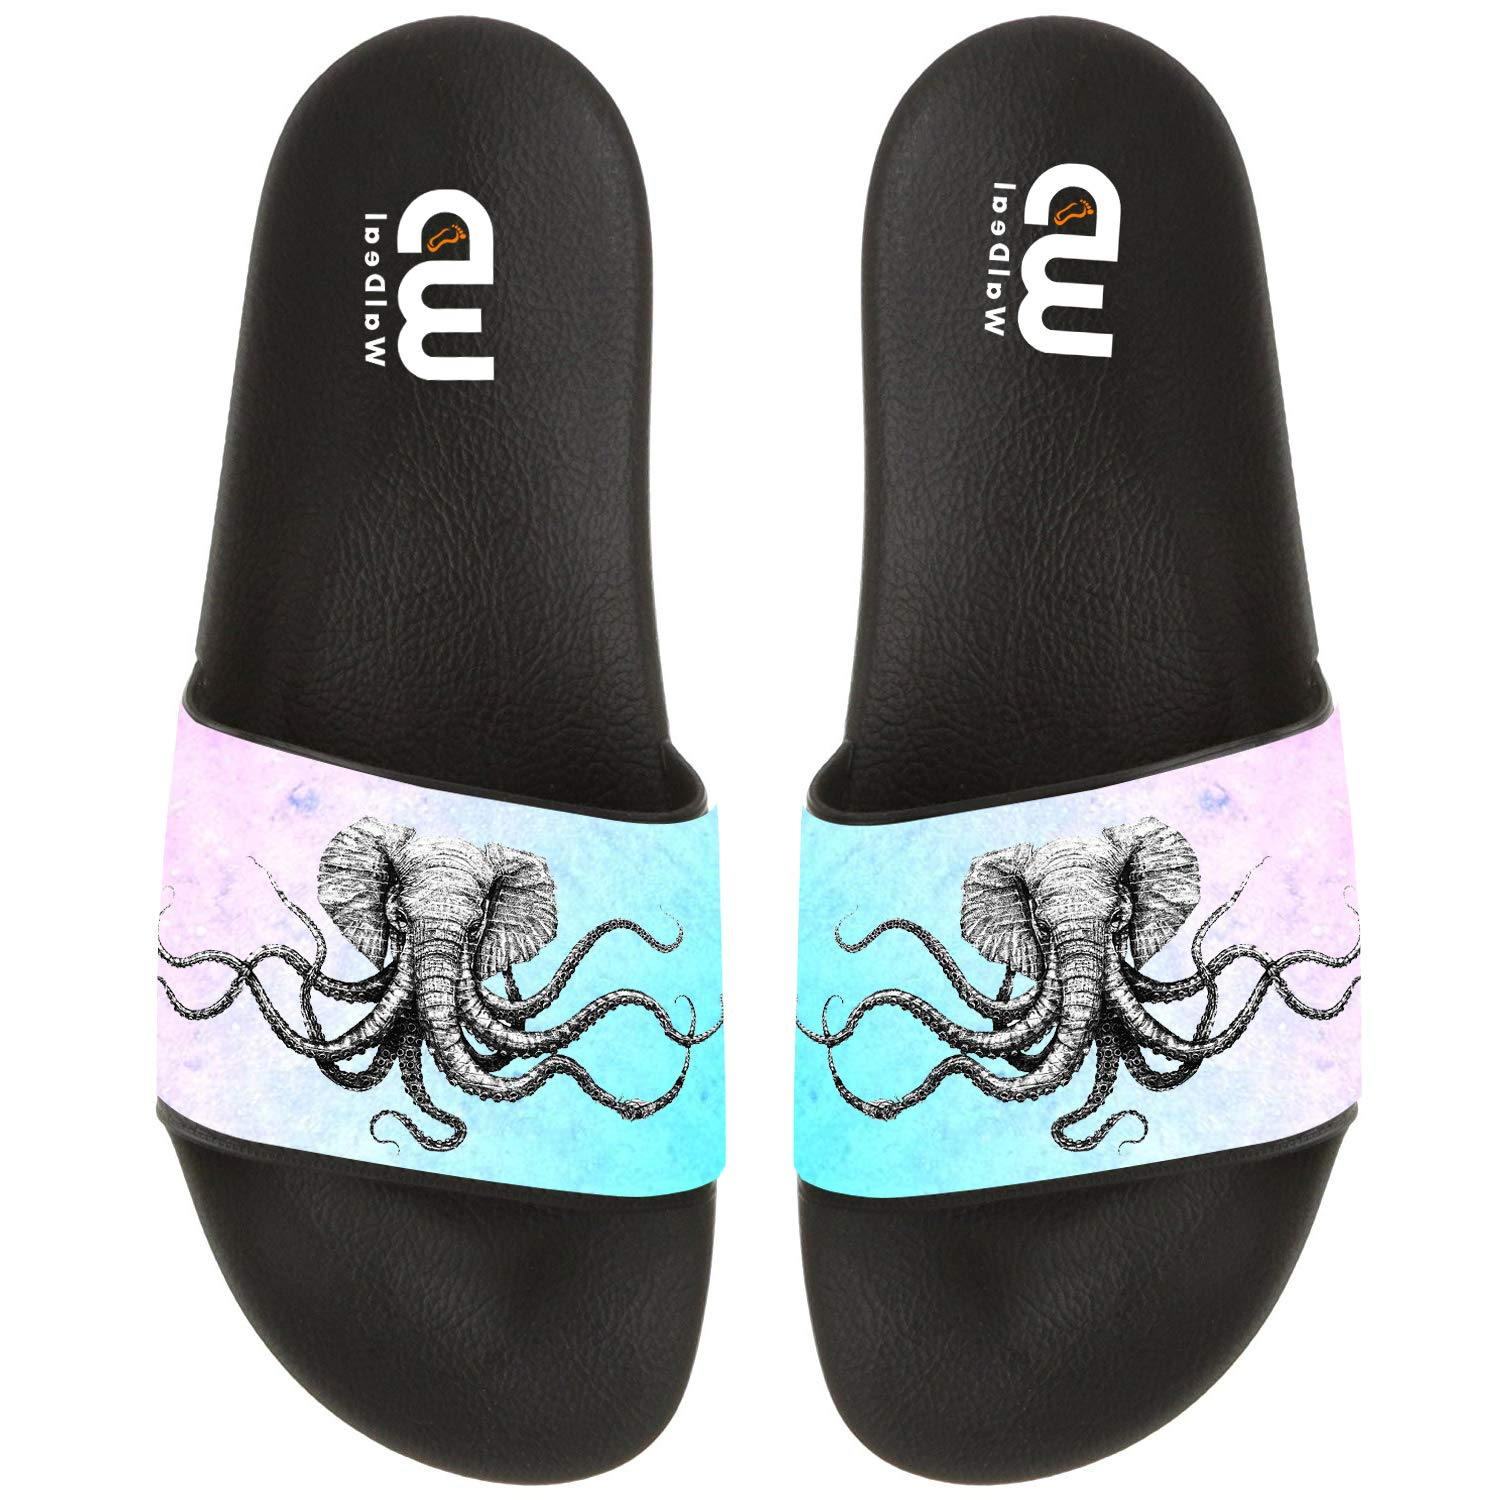 Funny Elephant Octopus Summer Slides Slippers For Boy Girl Indoor Outdoor Beach Sandal Shoes size 2